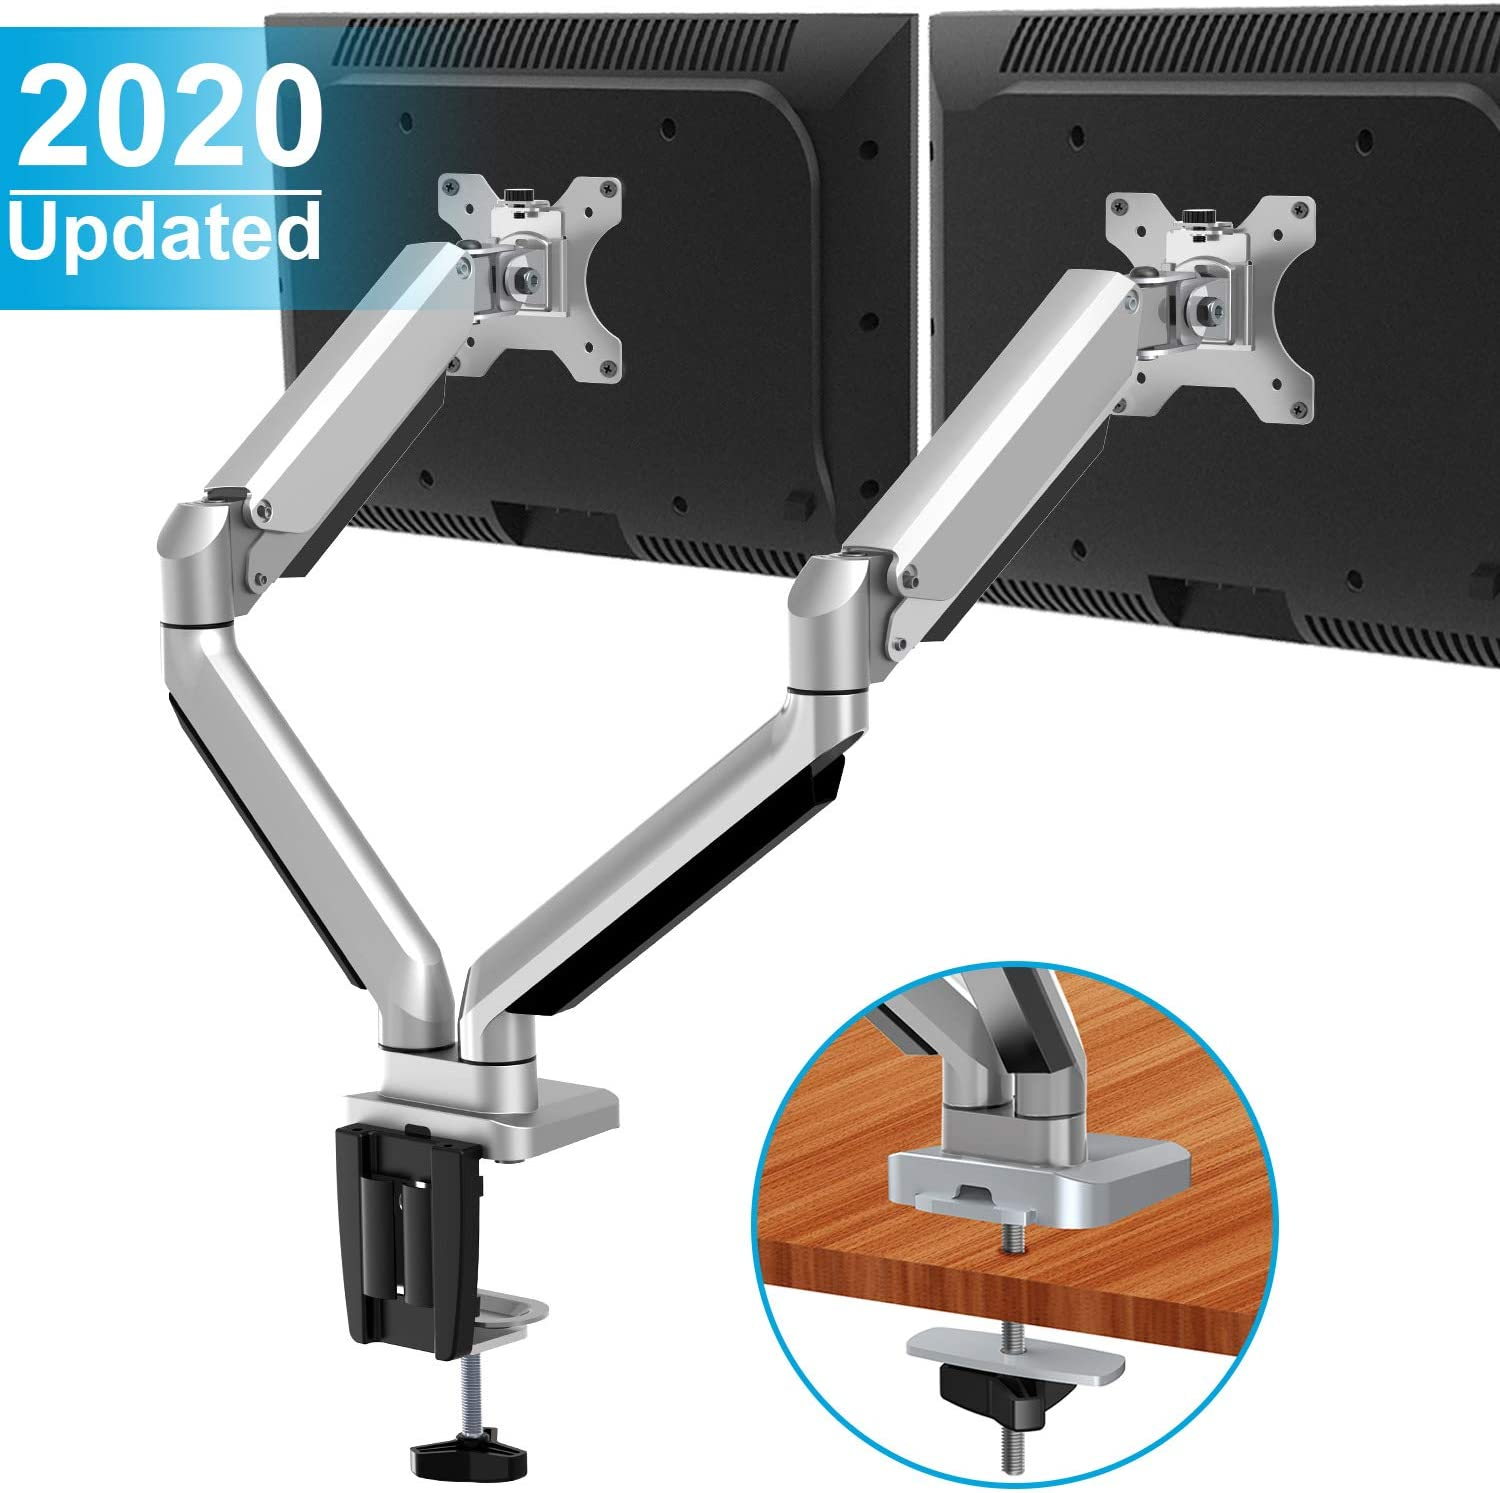 Dual Monitor Desk Mount, Height Adjustable Monitor Stand, Articulating Gas Spring Monitor Arm with C Clamp and Grommet Base - Fits 2 Computer Screens up to 32 Inch, 17.6lbs Each, Removable VESA 75 100